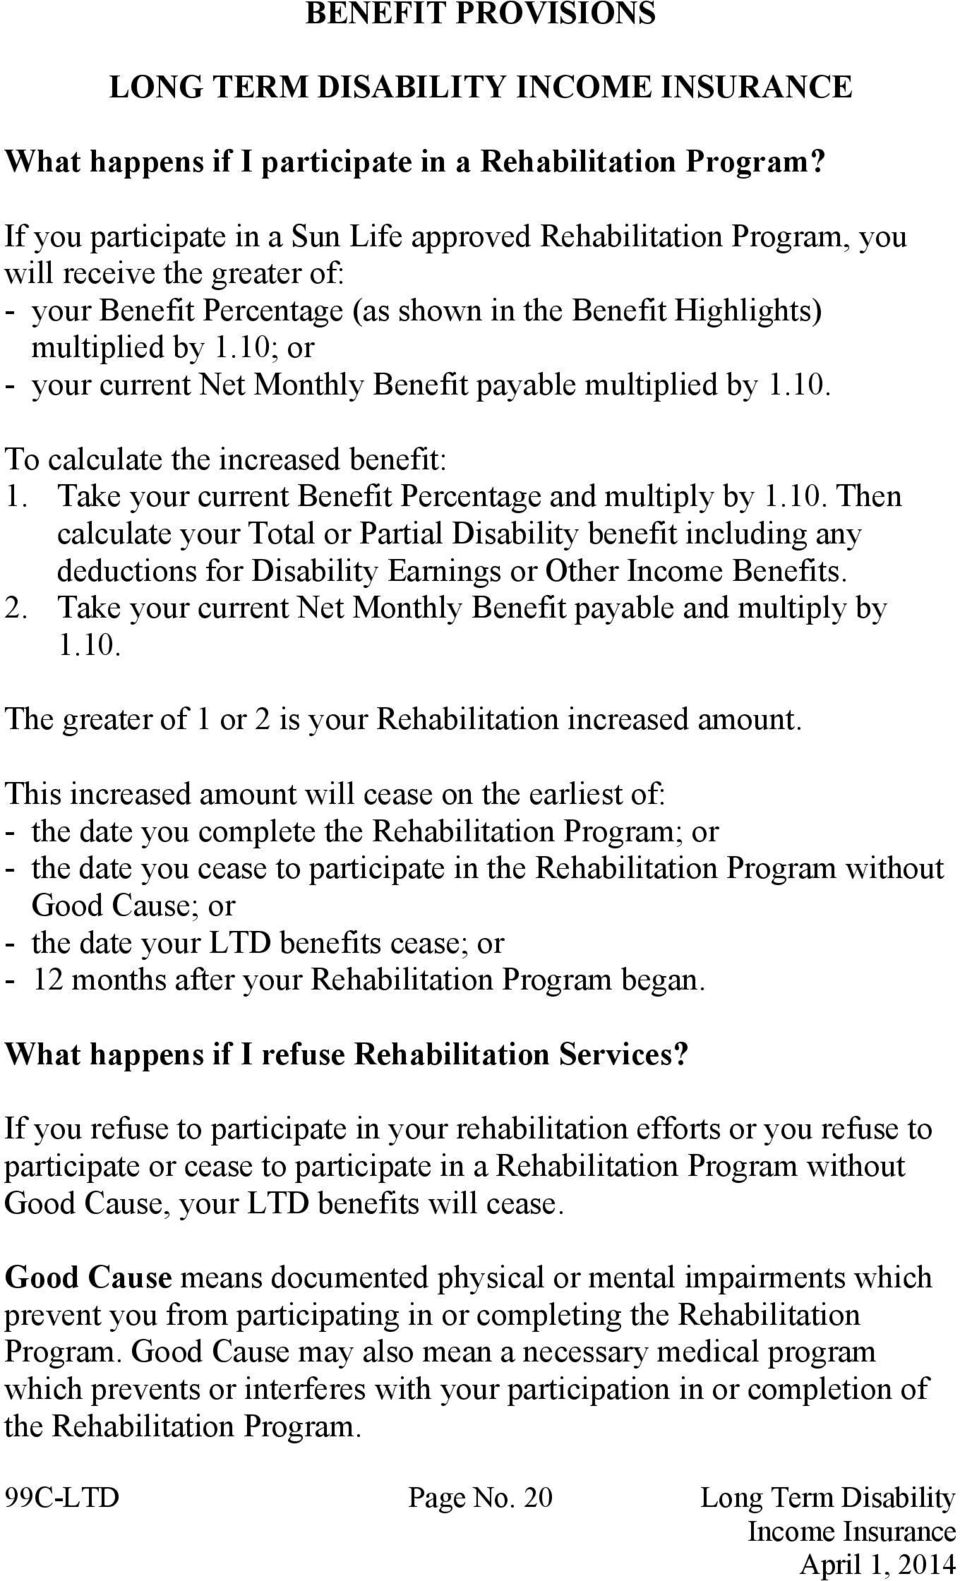 10; or - your current Net Monthly Benefit payable multiplied by 1.10. To calculate the increased benefit: 1. Take your current Benefit Percentage and multiply by 1.10. Then calculate your Total or Partial Disability benefit including any deductions for Disability Earnings or Other Income Benefits.